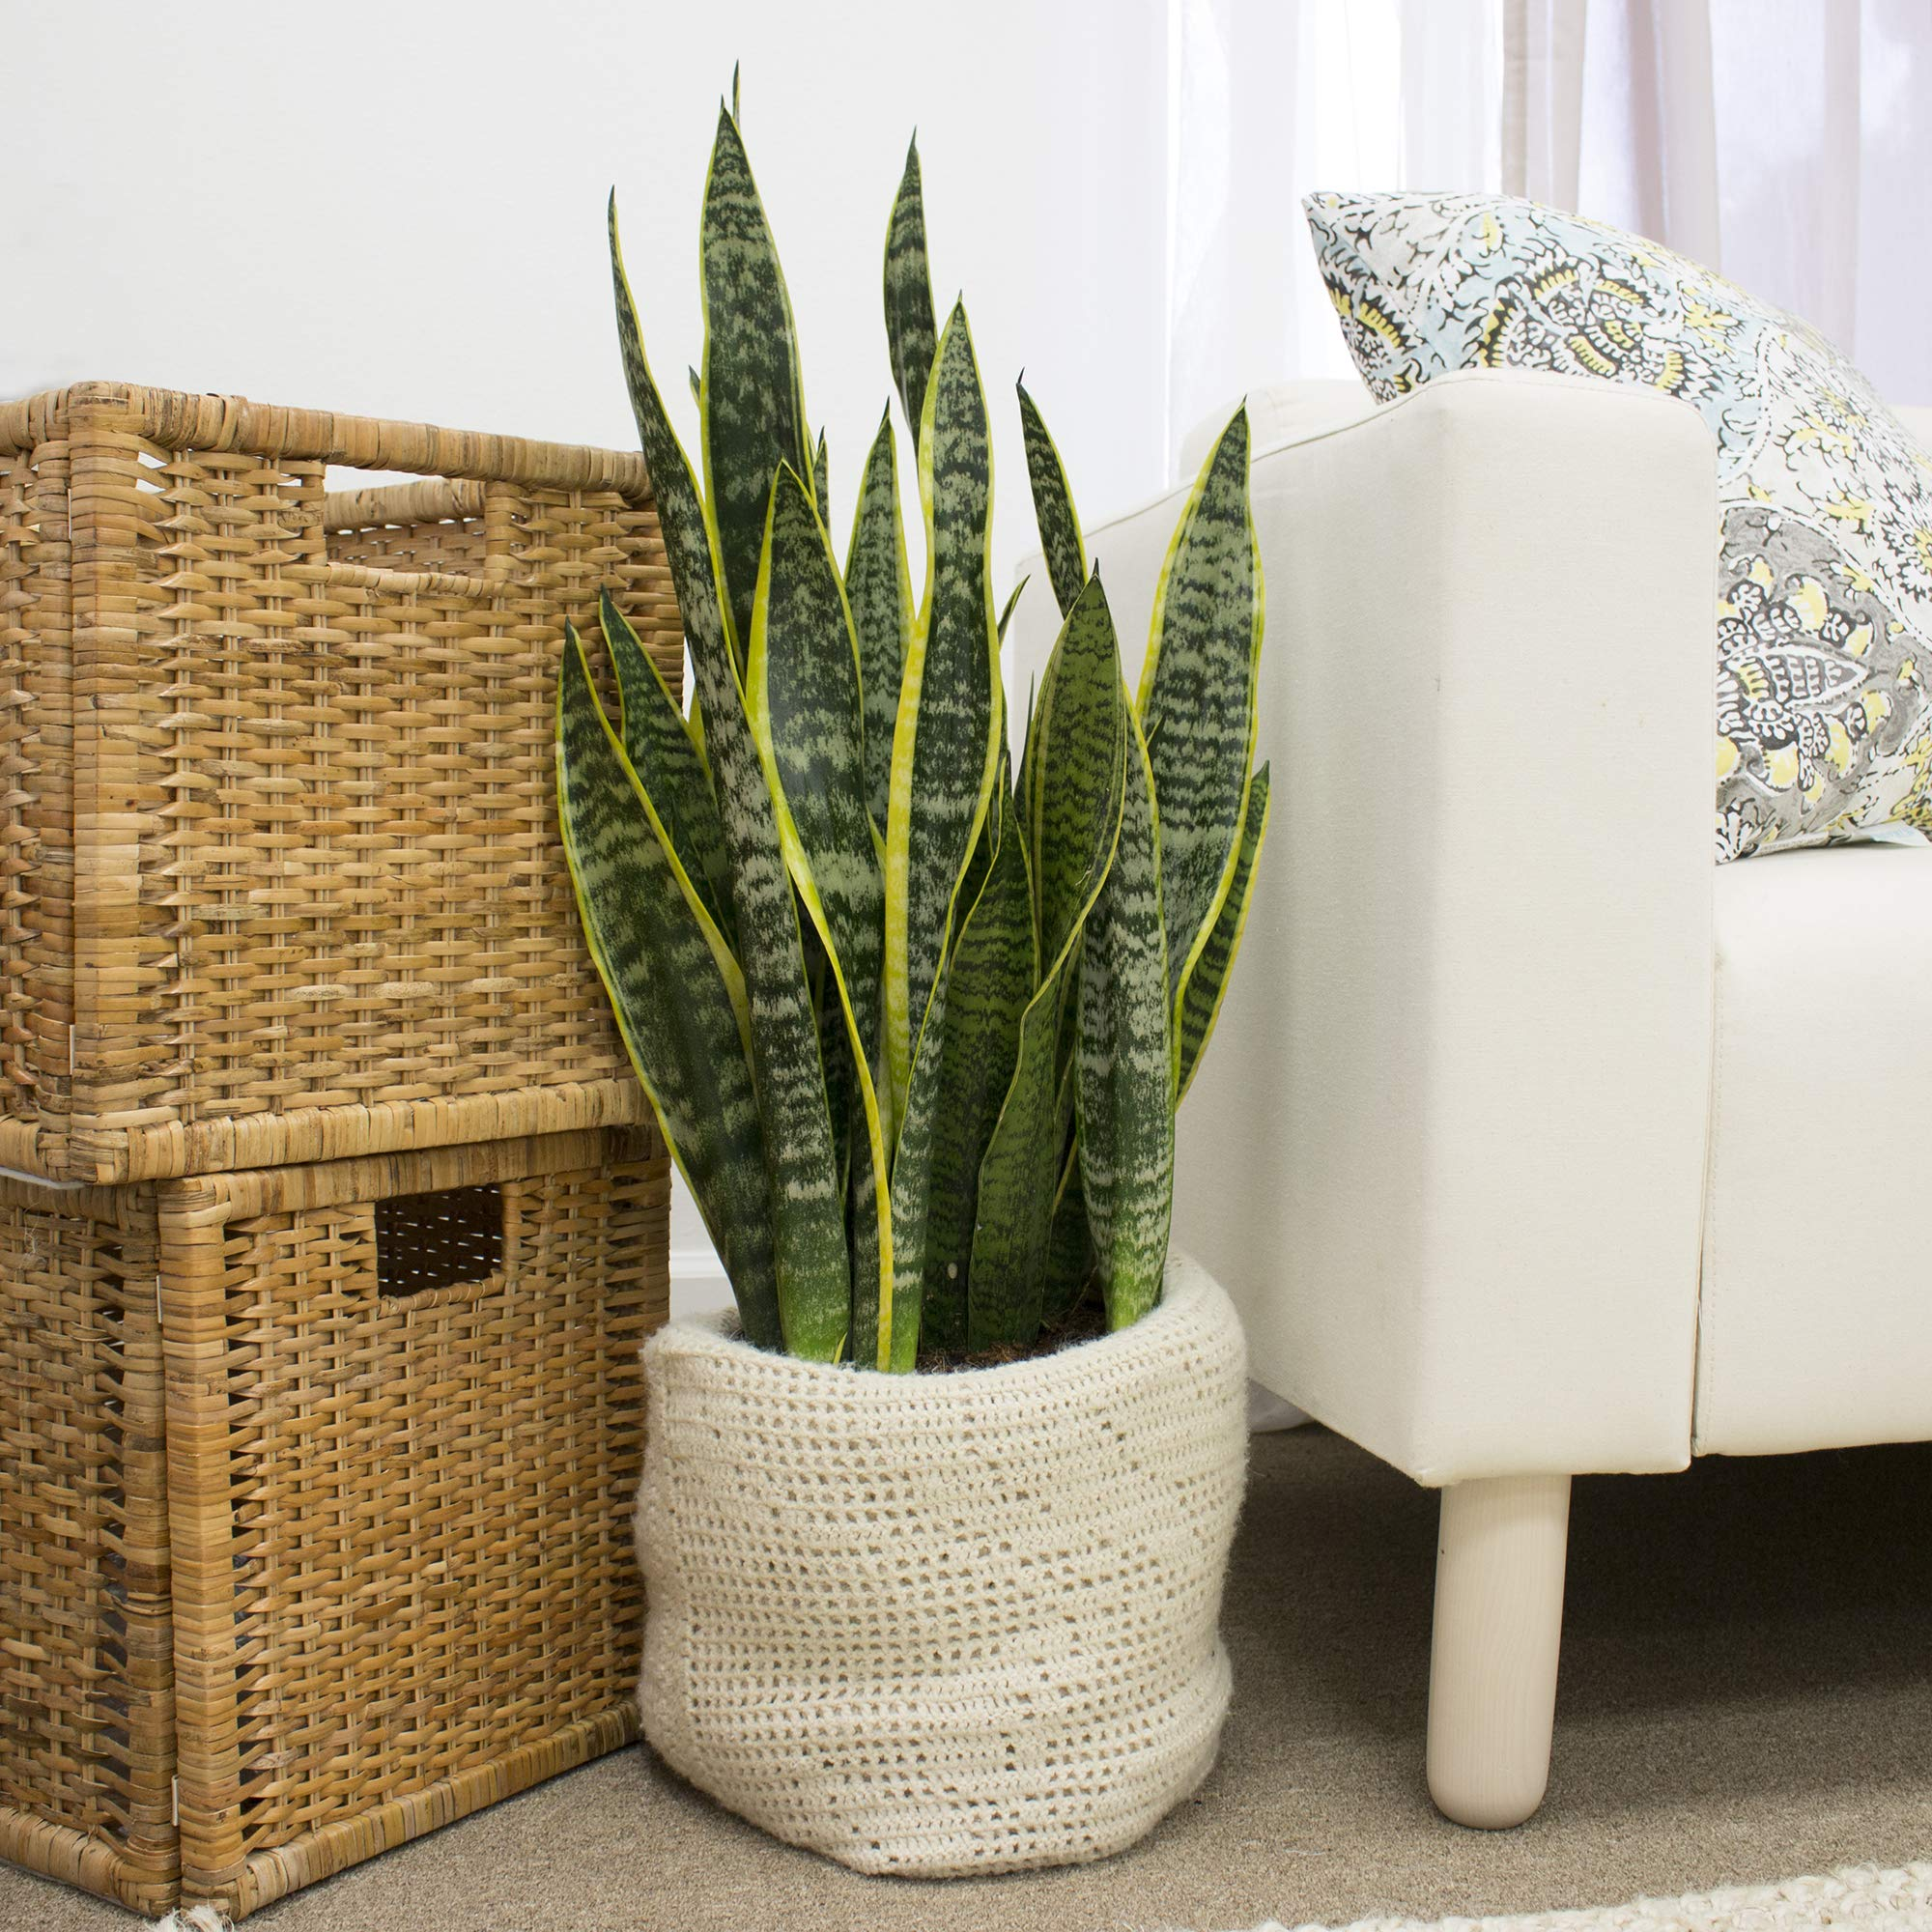 Costa Farms Sansevieria Live Indoor Snake-Plant, 8.75-Inch, in in Grower Pot by Costa Farms (Image #4)